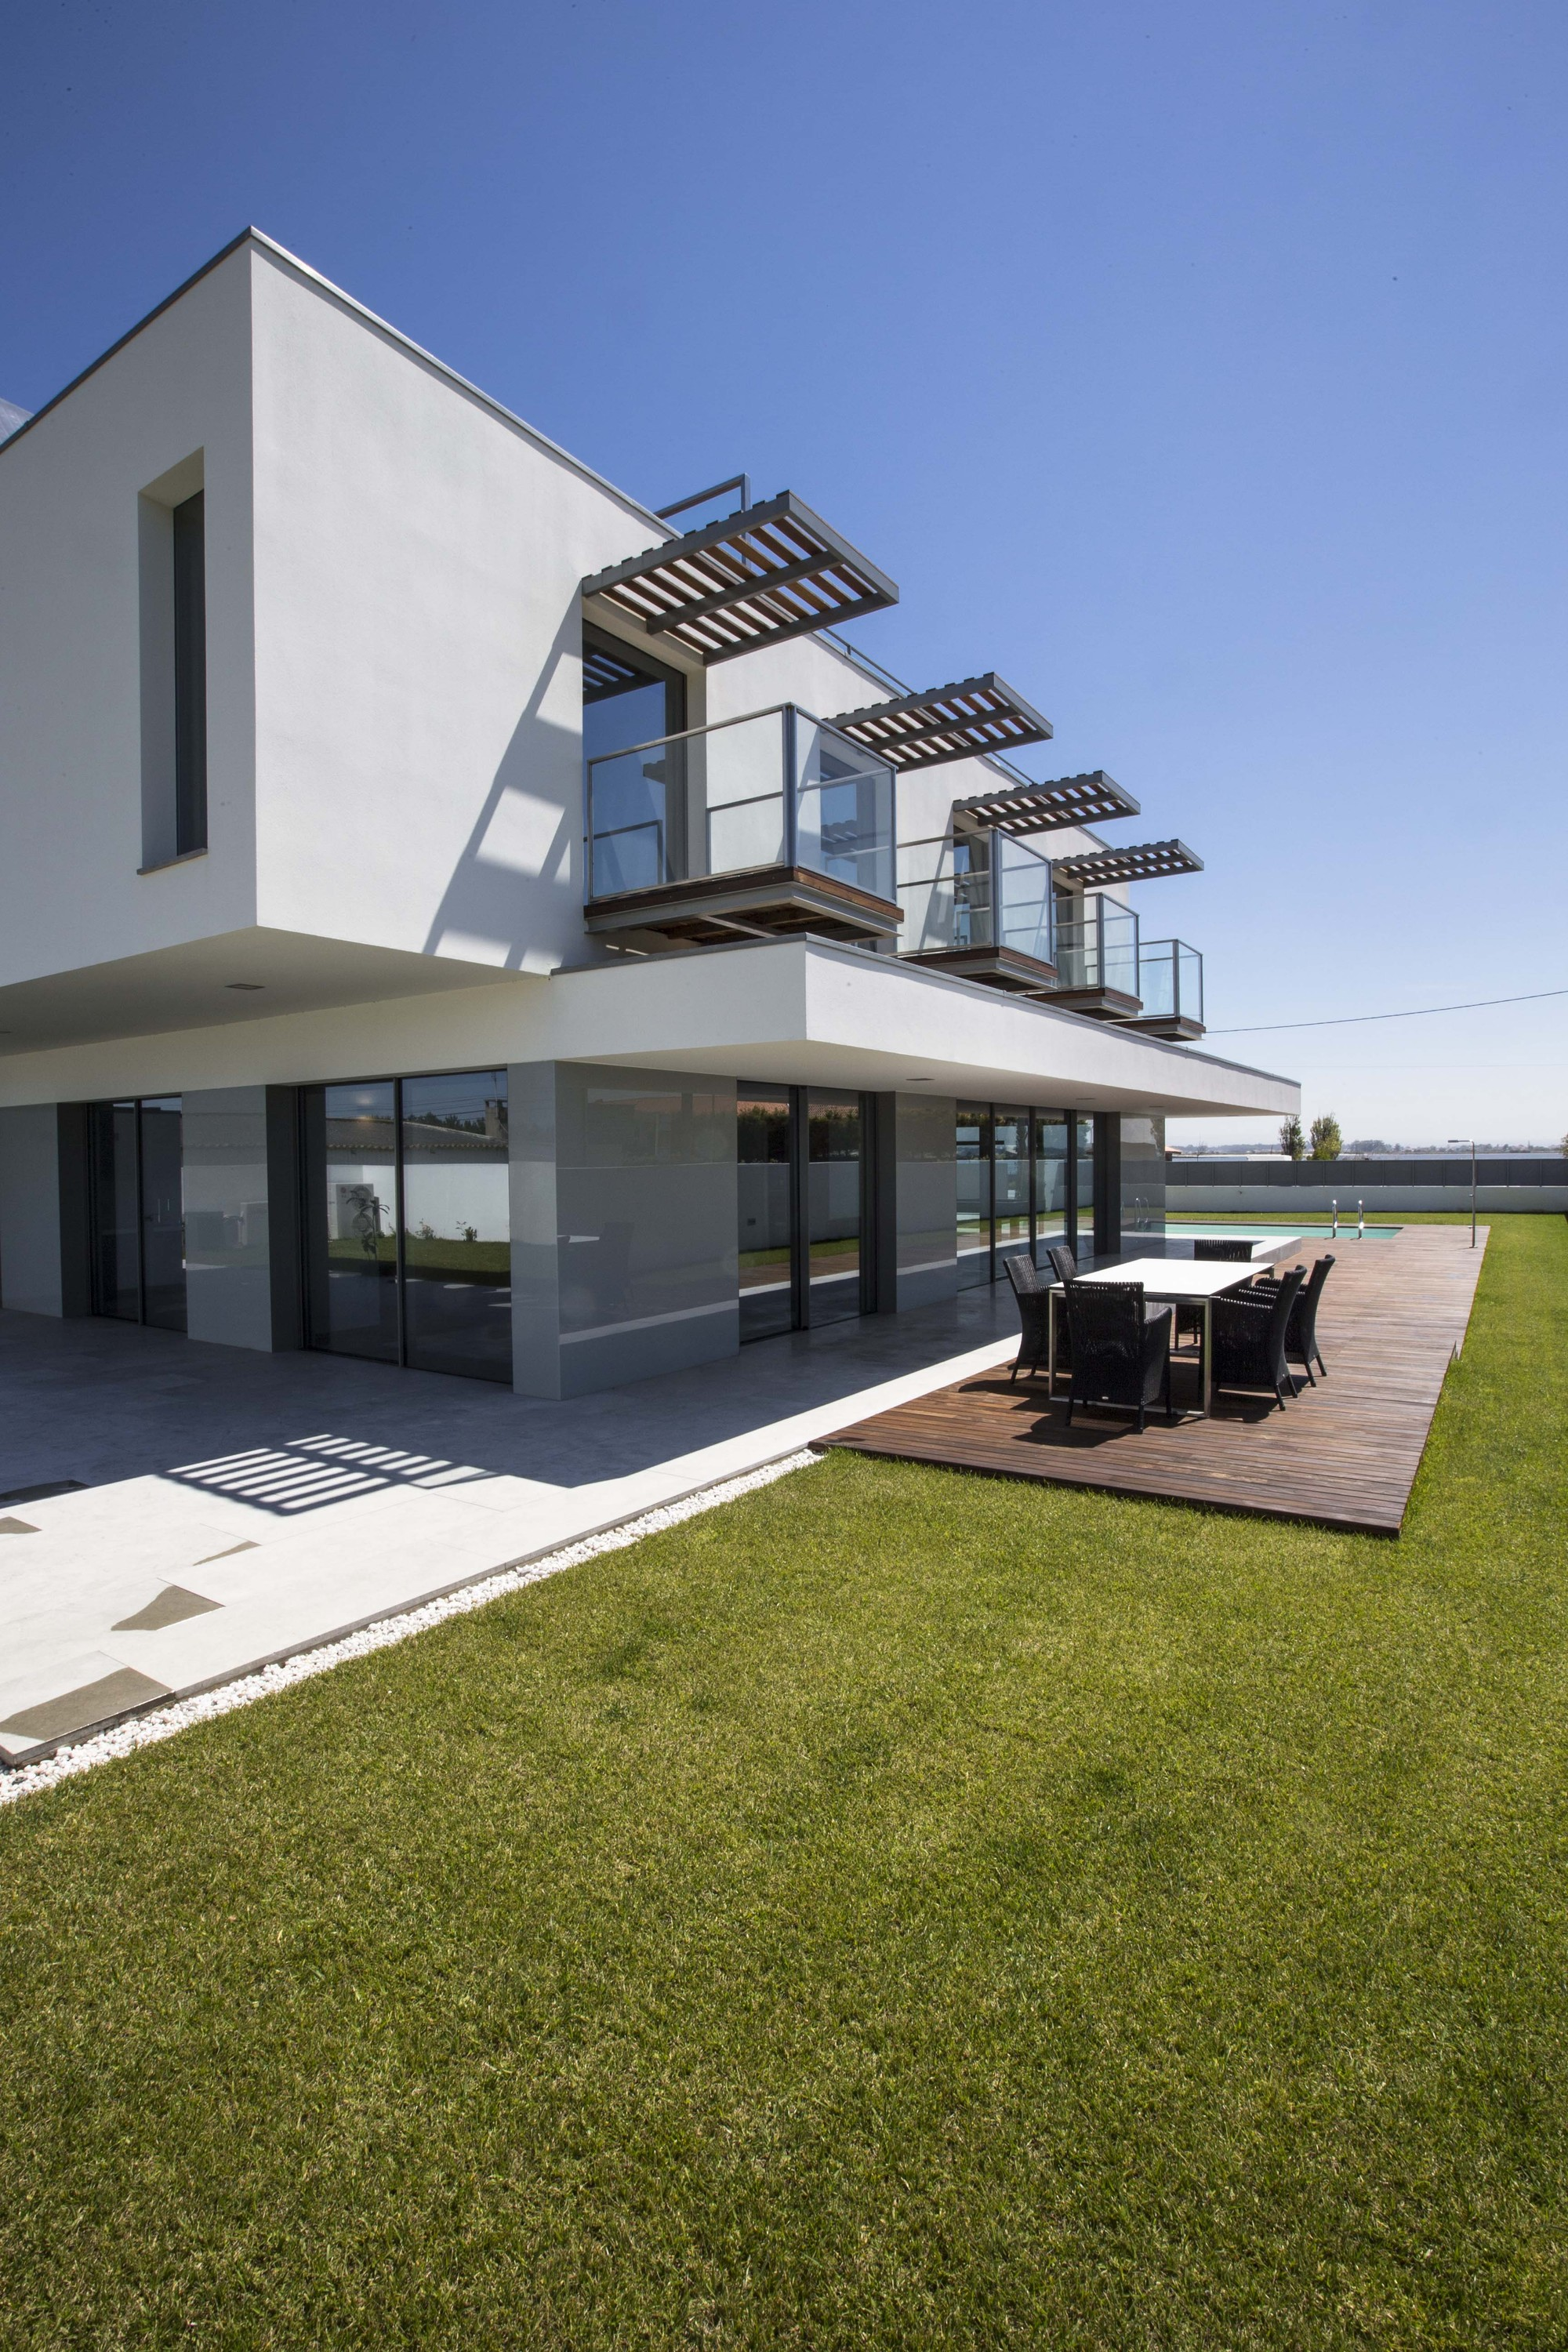 Va house by atelier d 39 arquitectura j a lopes da costa in for Atelier arquitectura